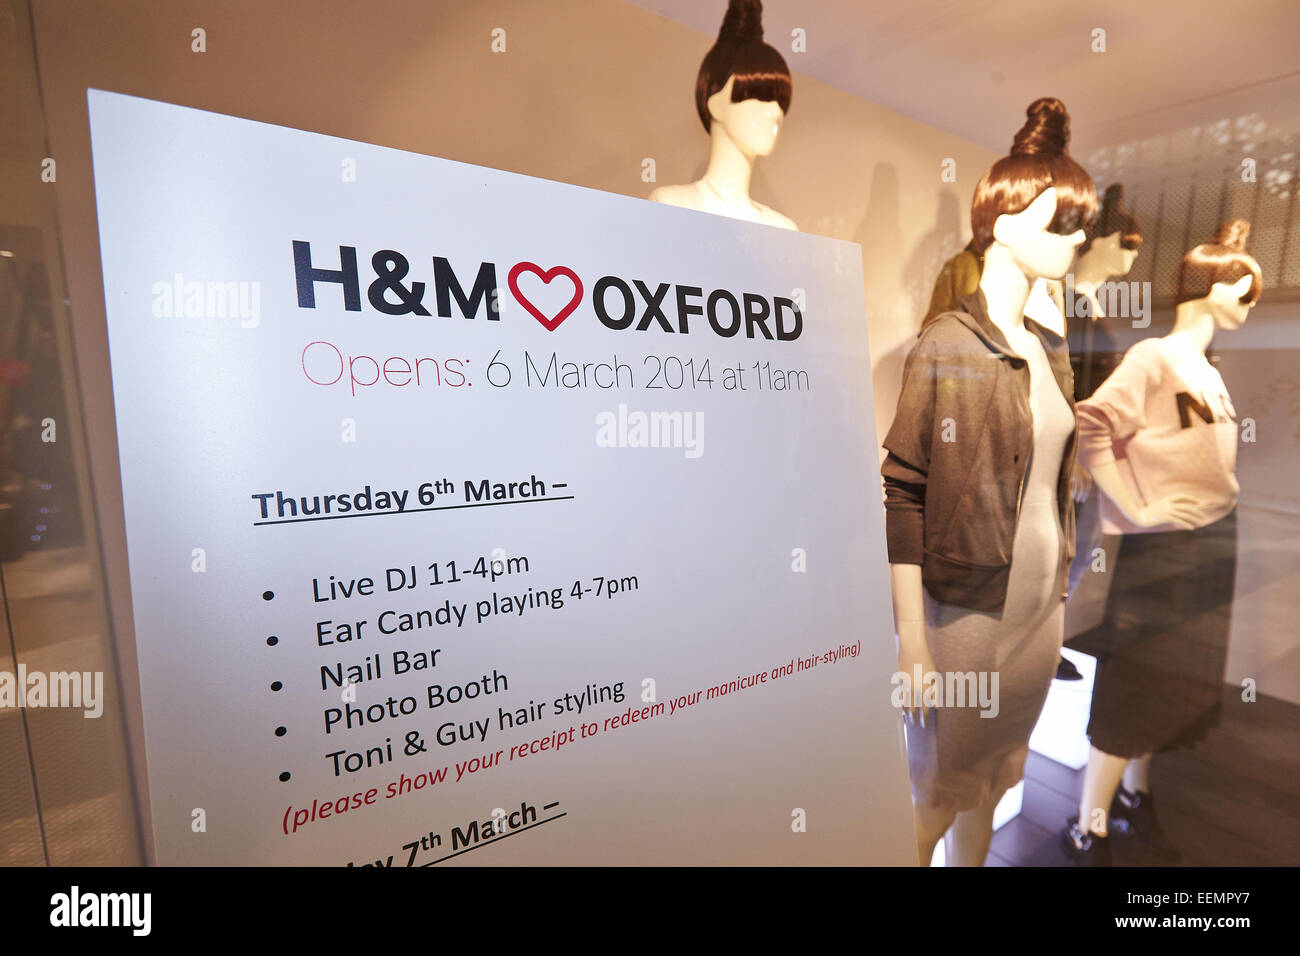 H&m Shop Sign Stock Photos & H&m Shop Sign Stock Images - Alamy